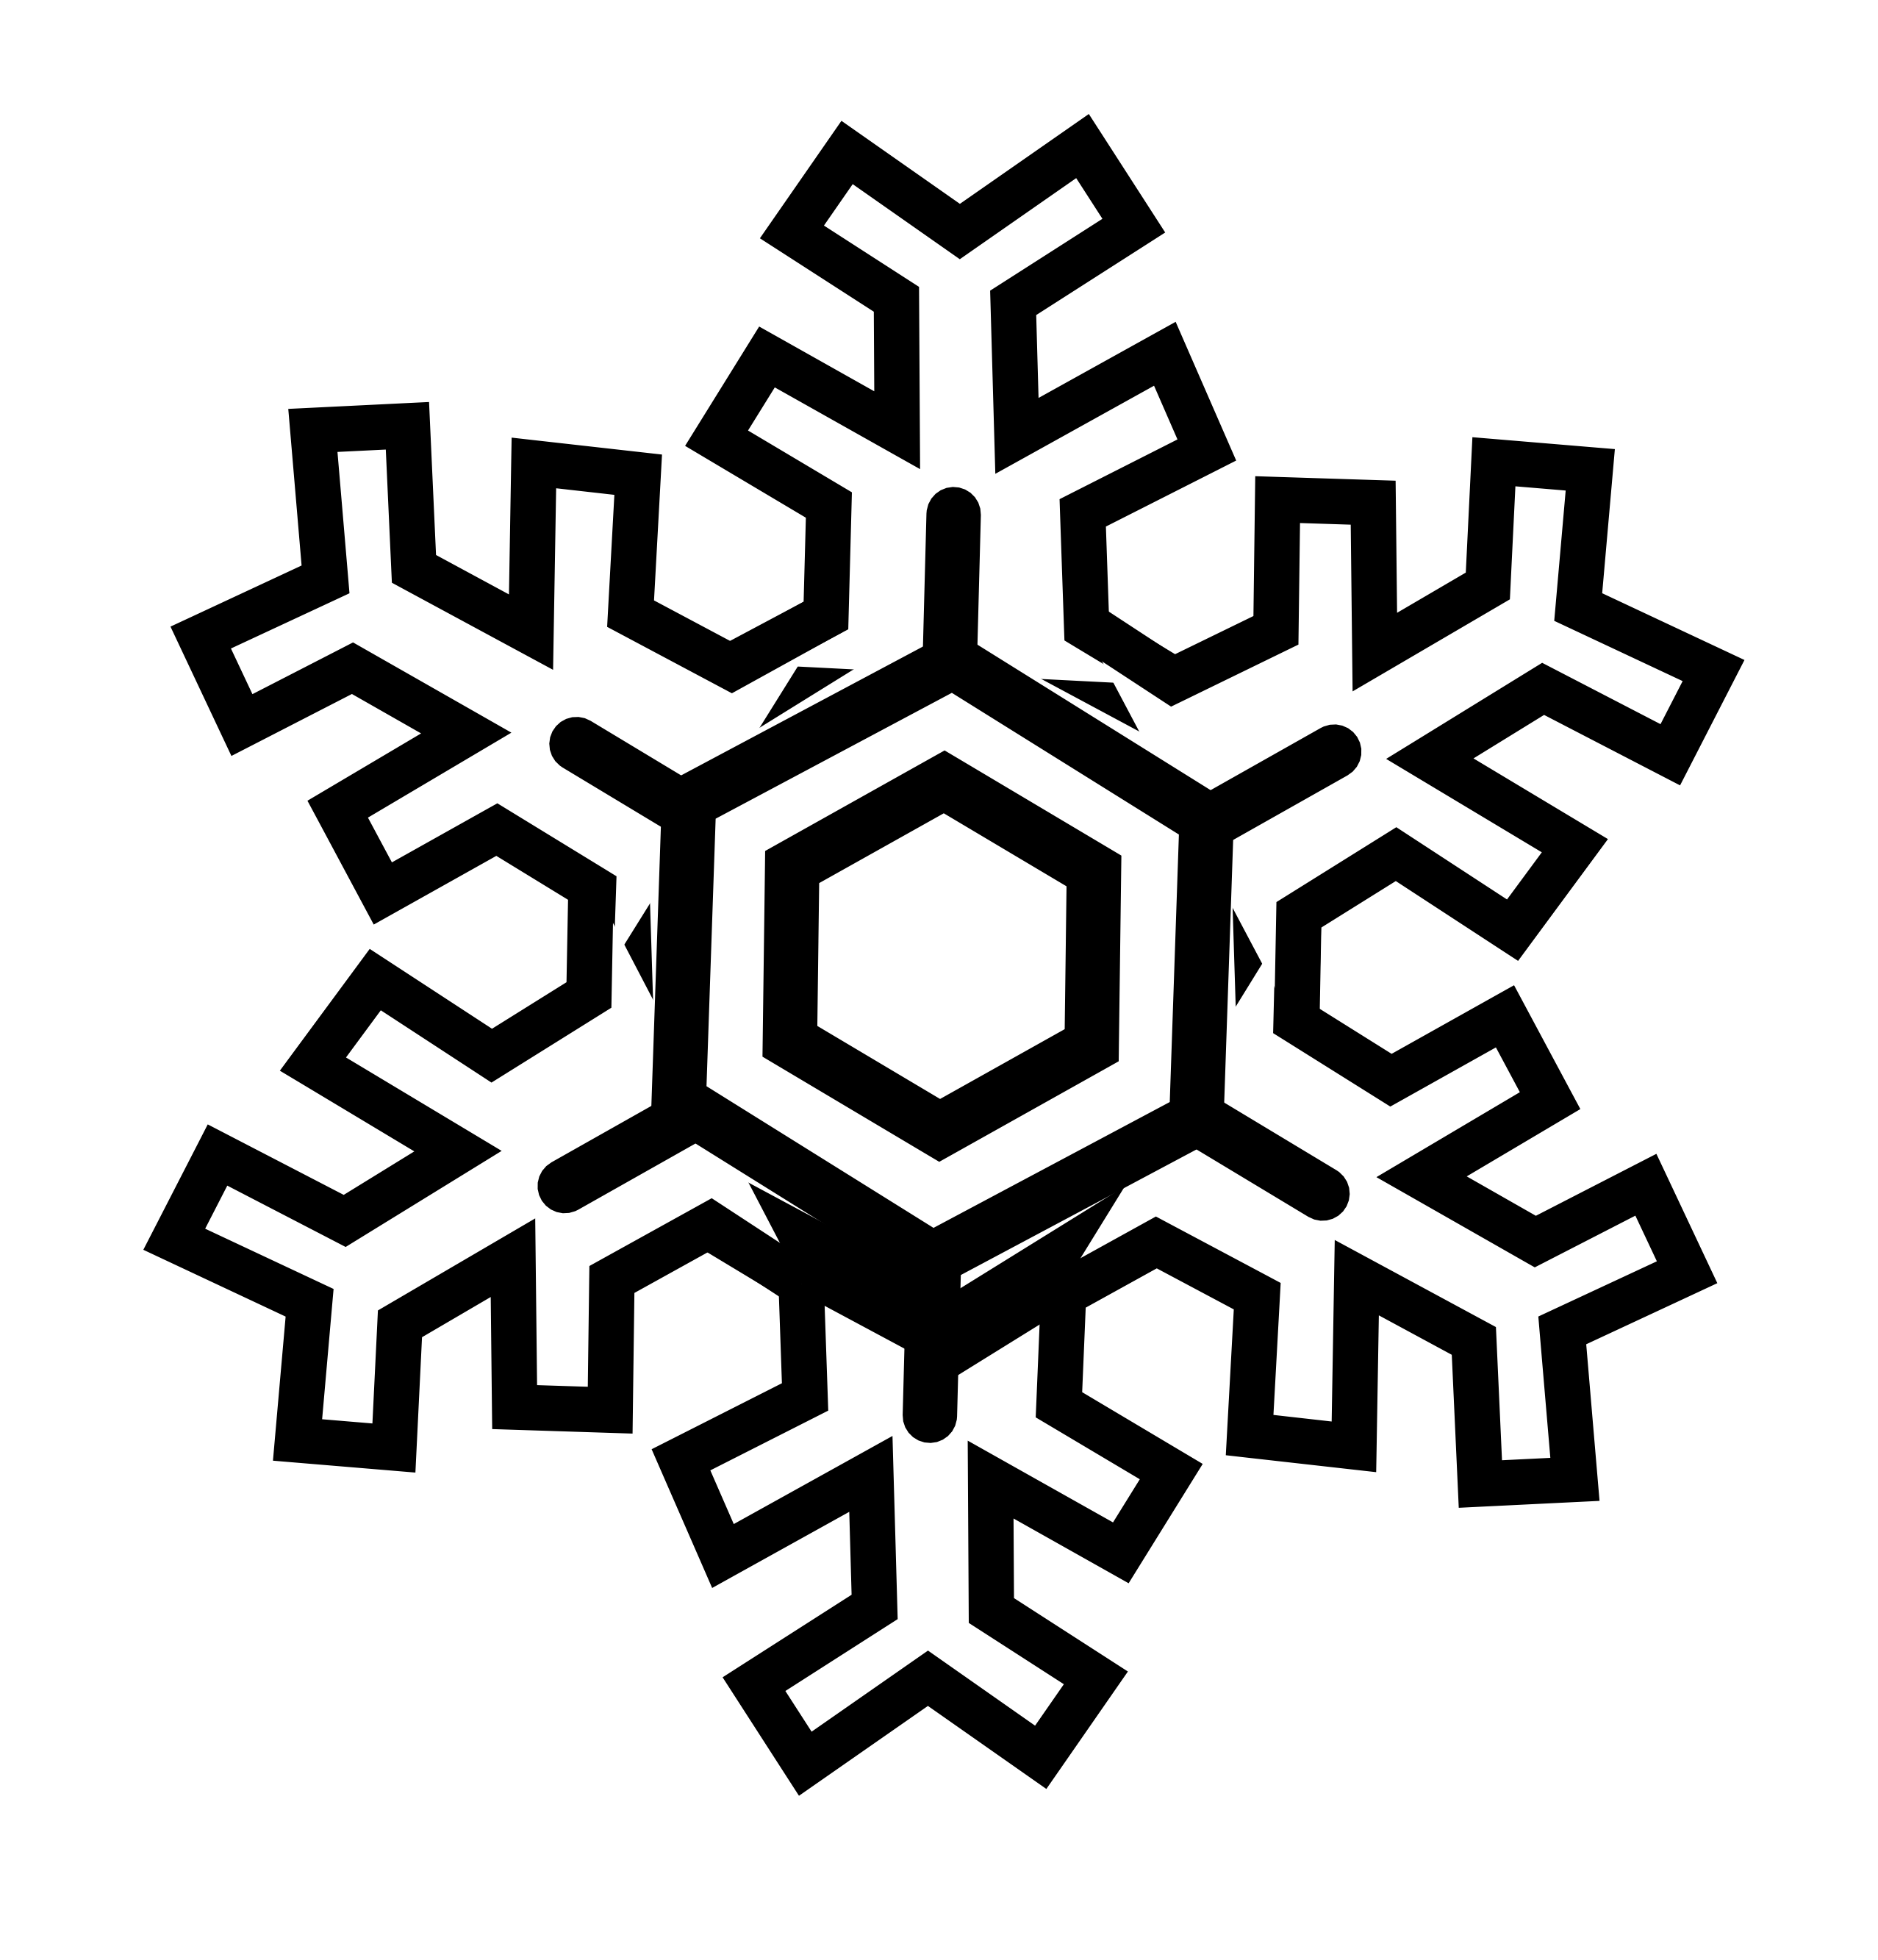 Black and white christmas clipart clipart free library Snowflake Clipart Black And White | Clipart Panda - Free Clipart Images clipart free library